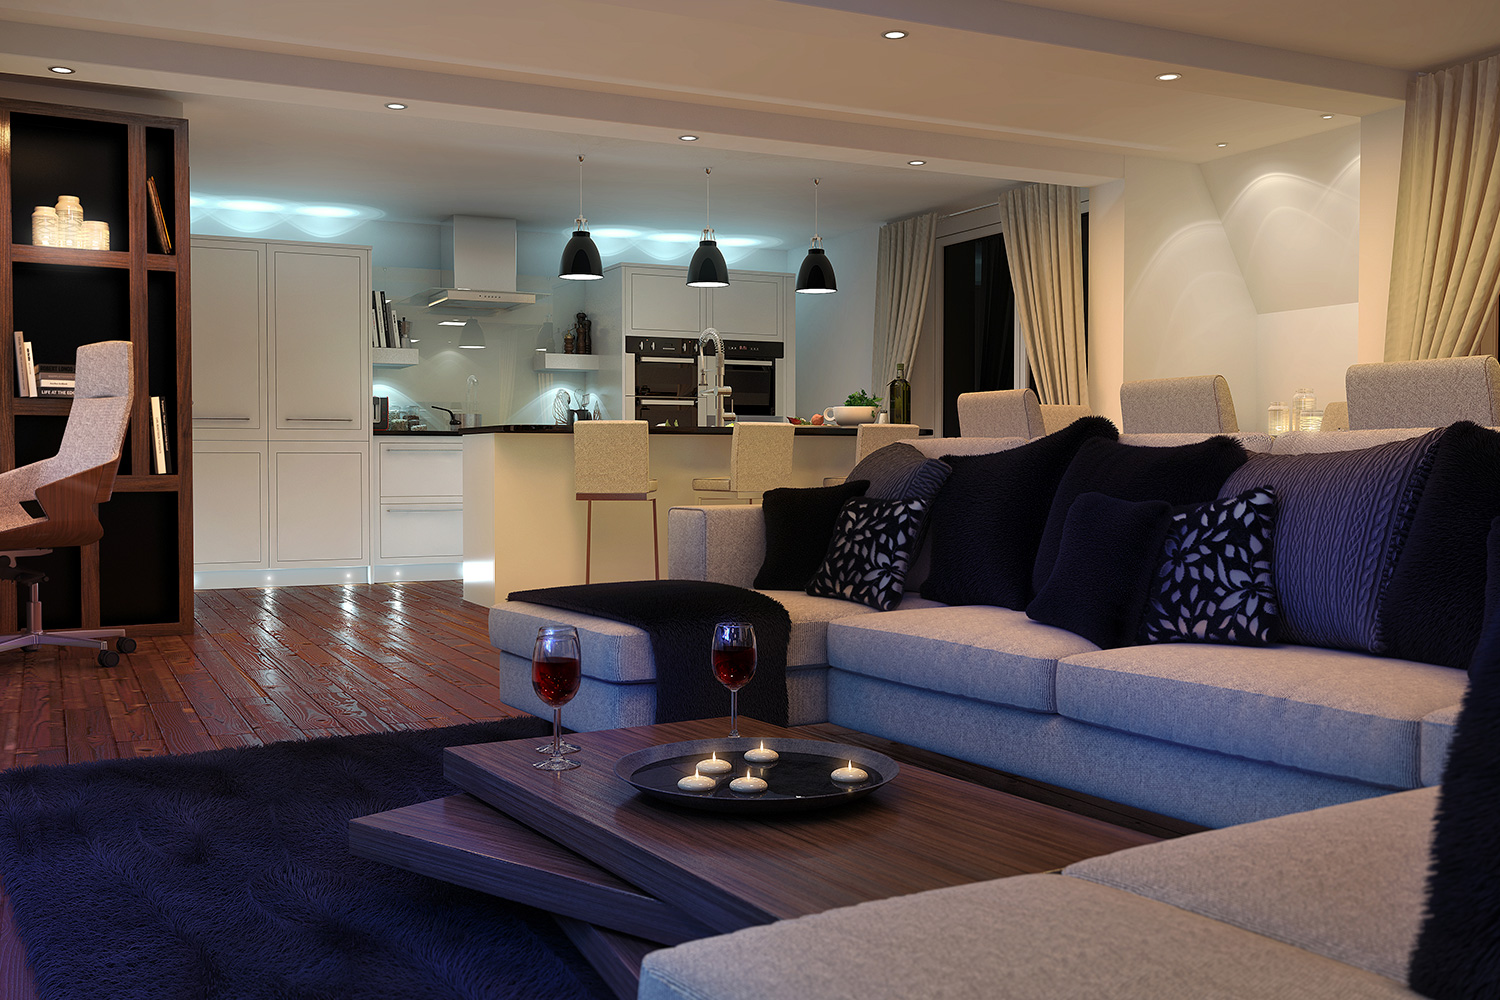 CGI visualisation Apartment with lounge and kitchen area, sofa, wood floor, candles, wine, breakfast bar